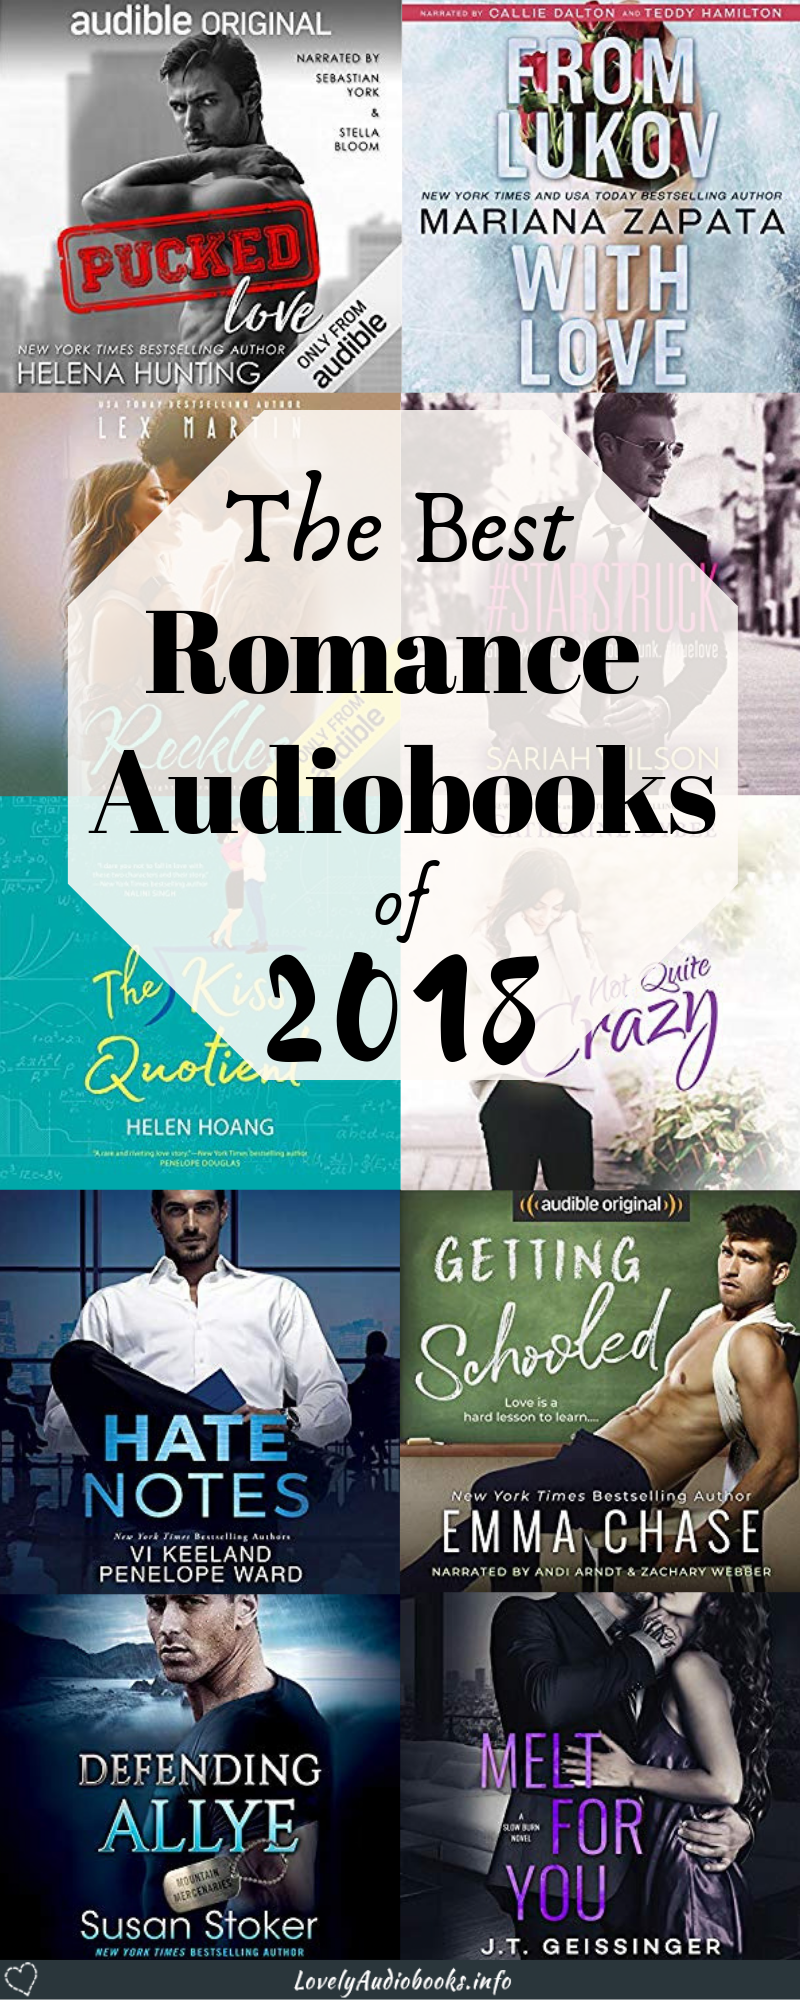 The Best Free Romance Audiobooks of 2018 | Chick Lit/Romance